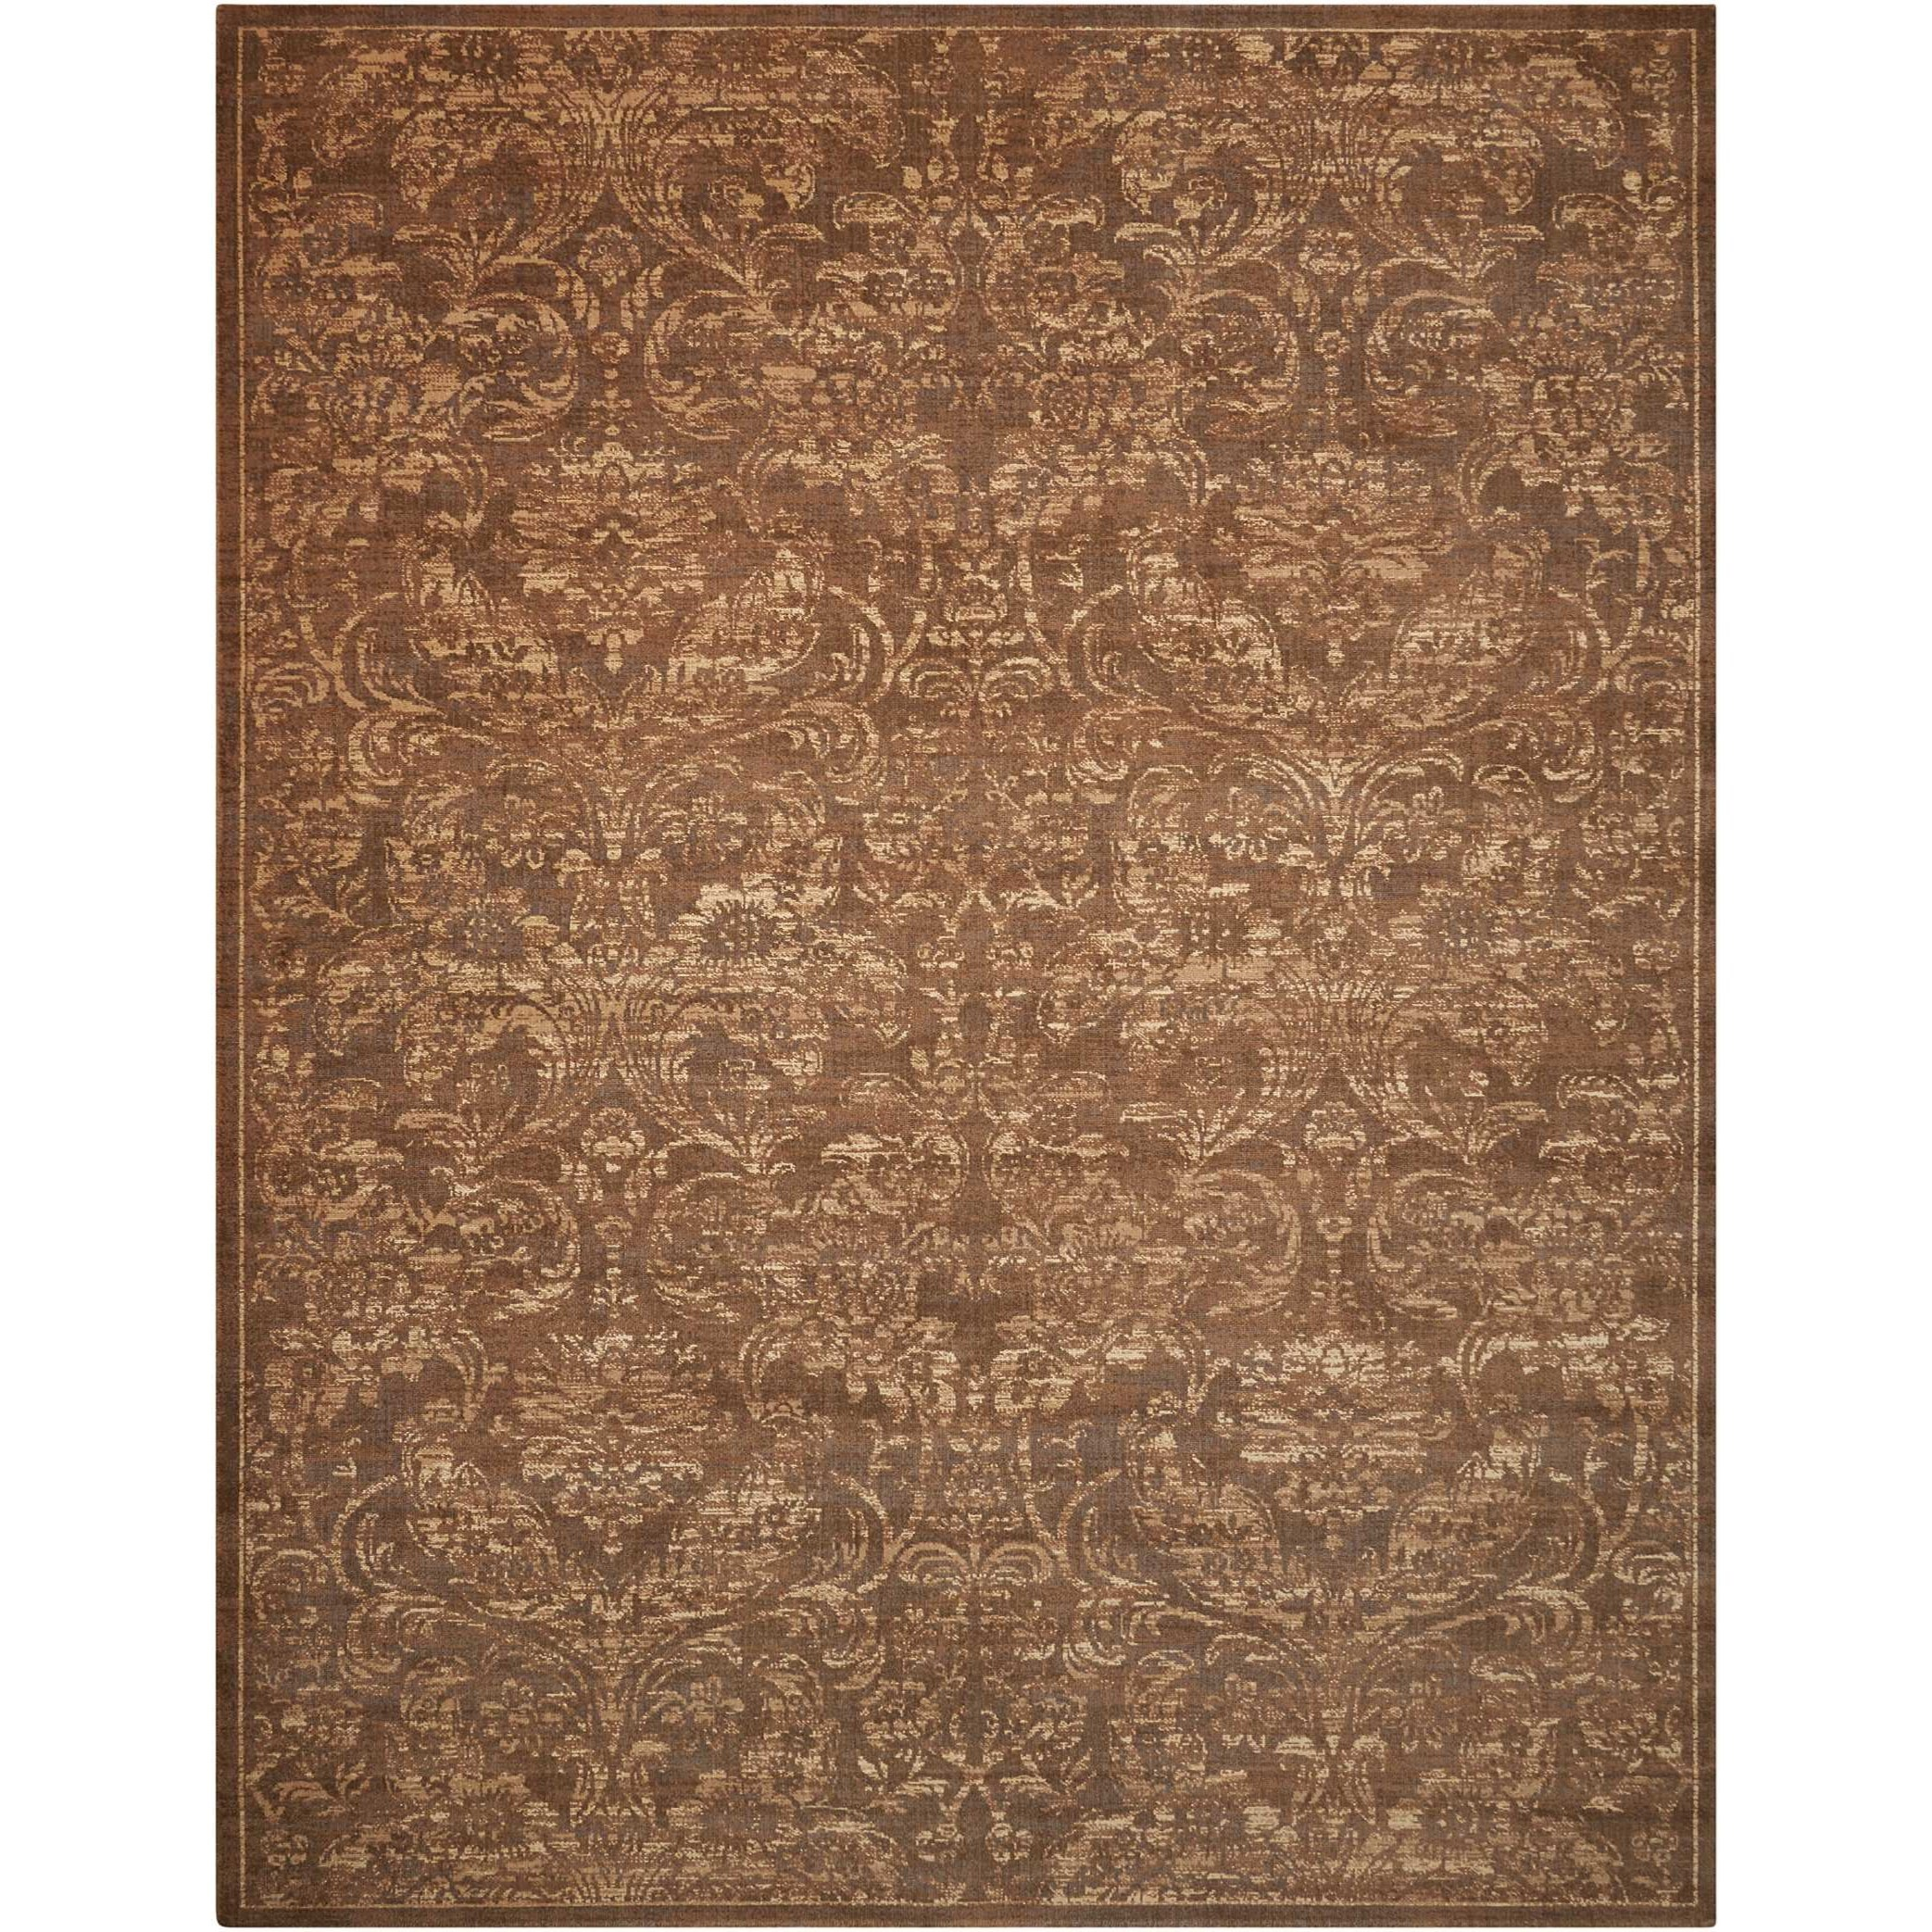 "Nourison Silken Allure 7'9"" x 9'9"" Chocolate Rectangle Rug - Item Number: SLK19 CHO 79X99"